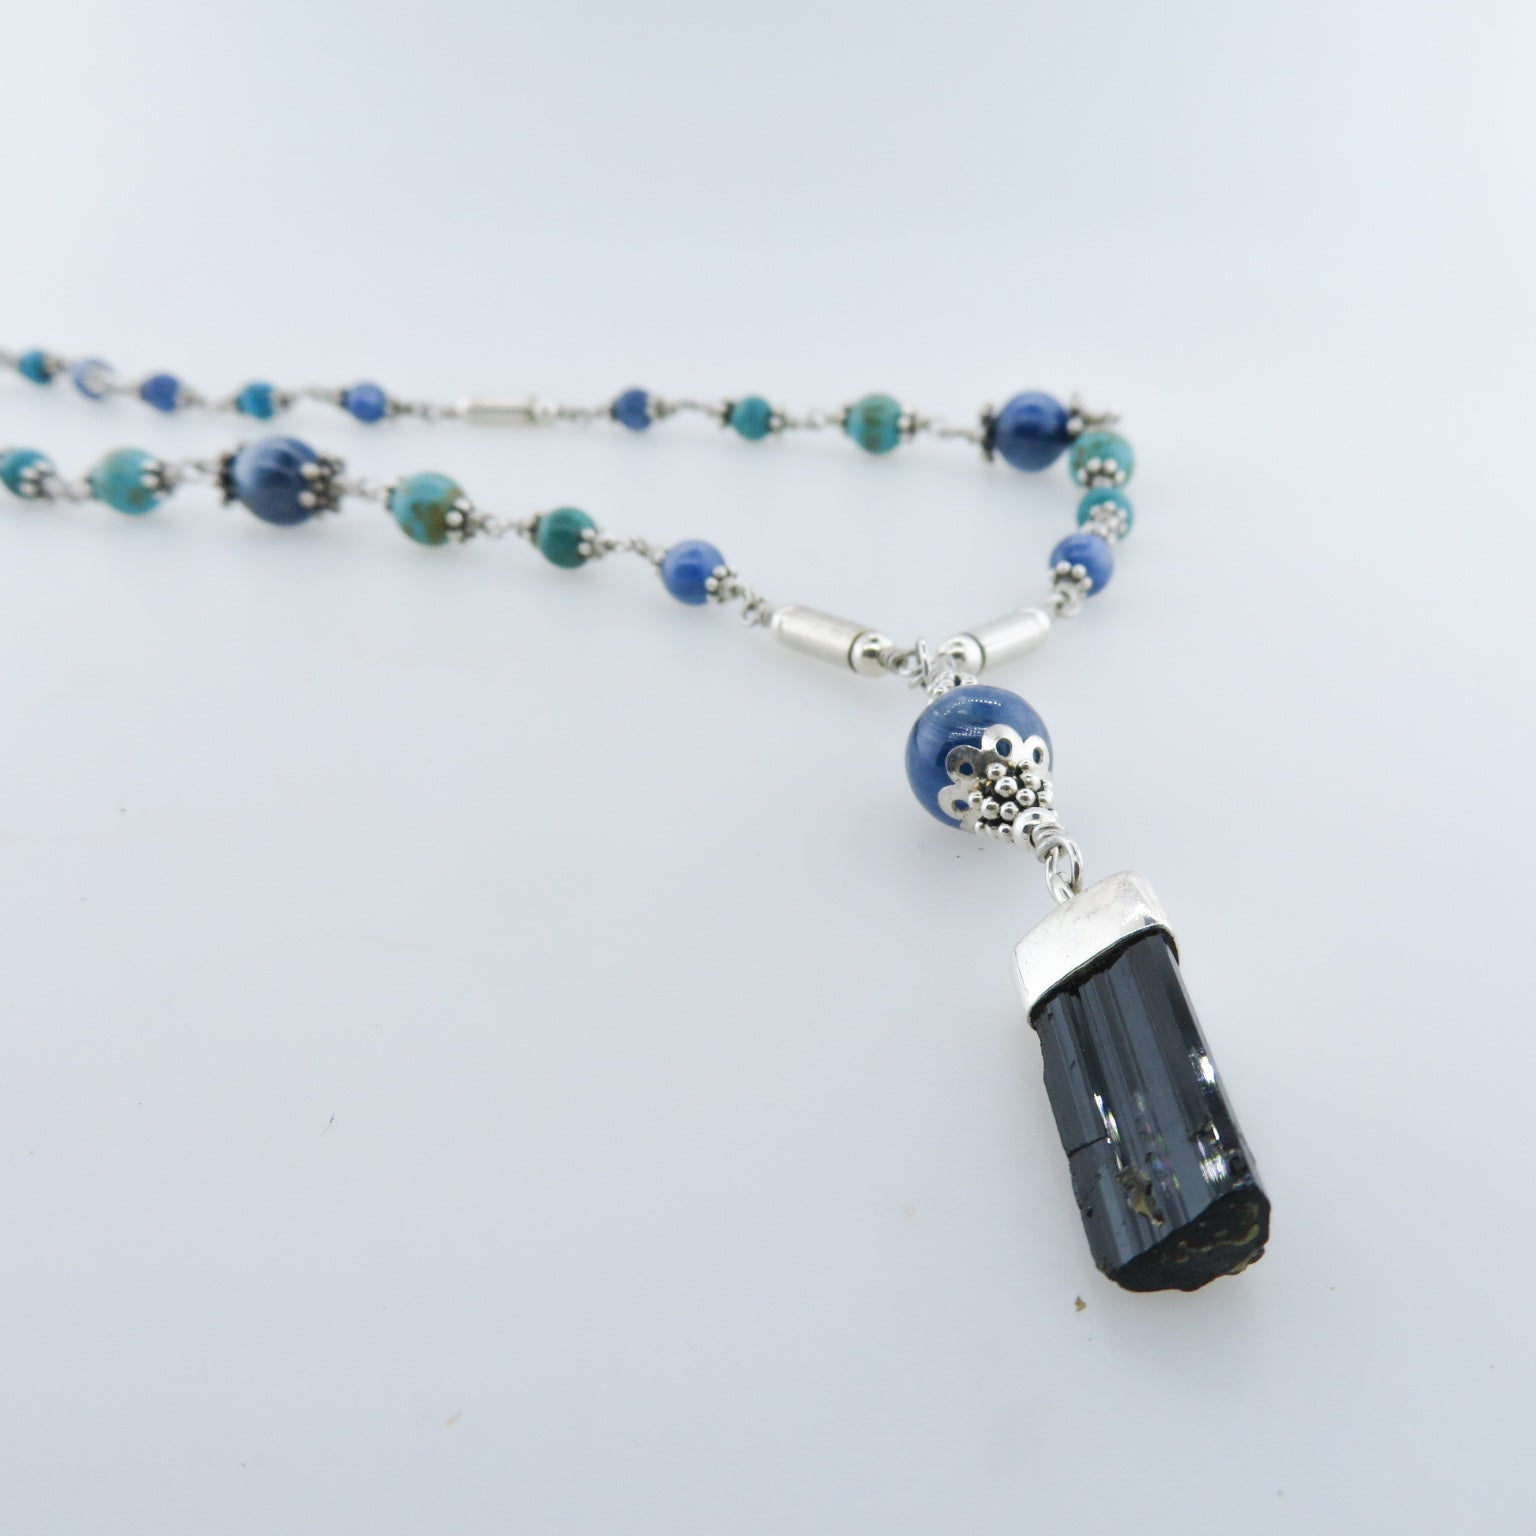 Black Tourmaline Necklace with Kyanite, Turquoise and Sterling Silver